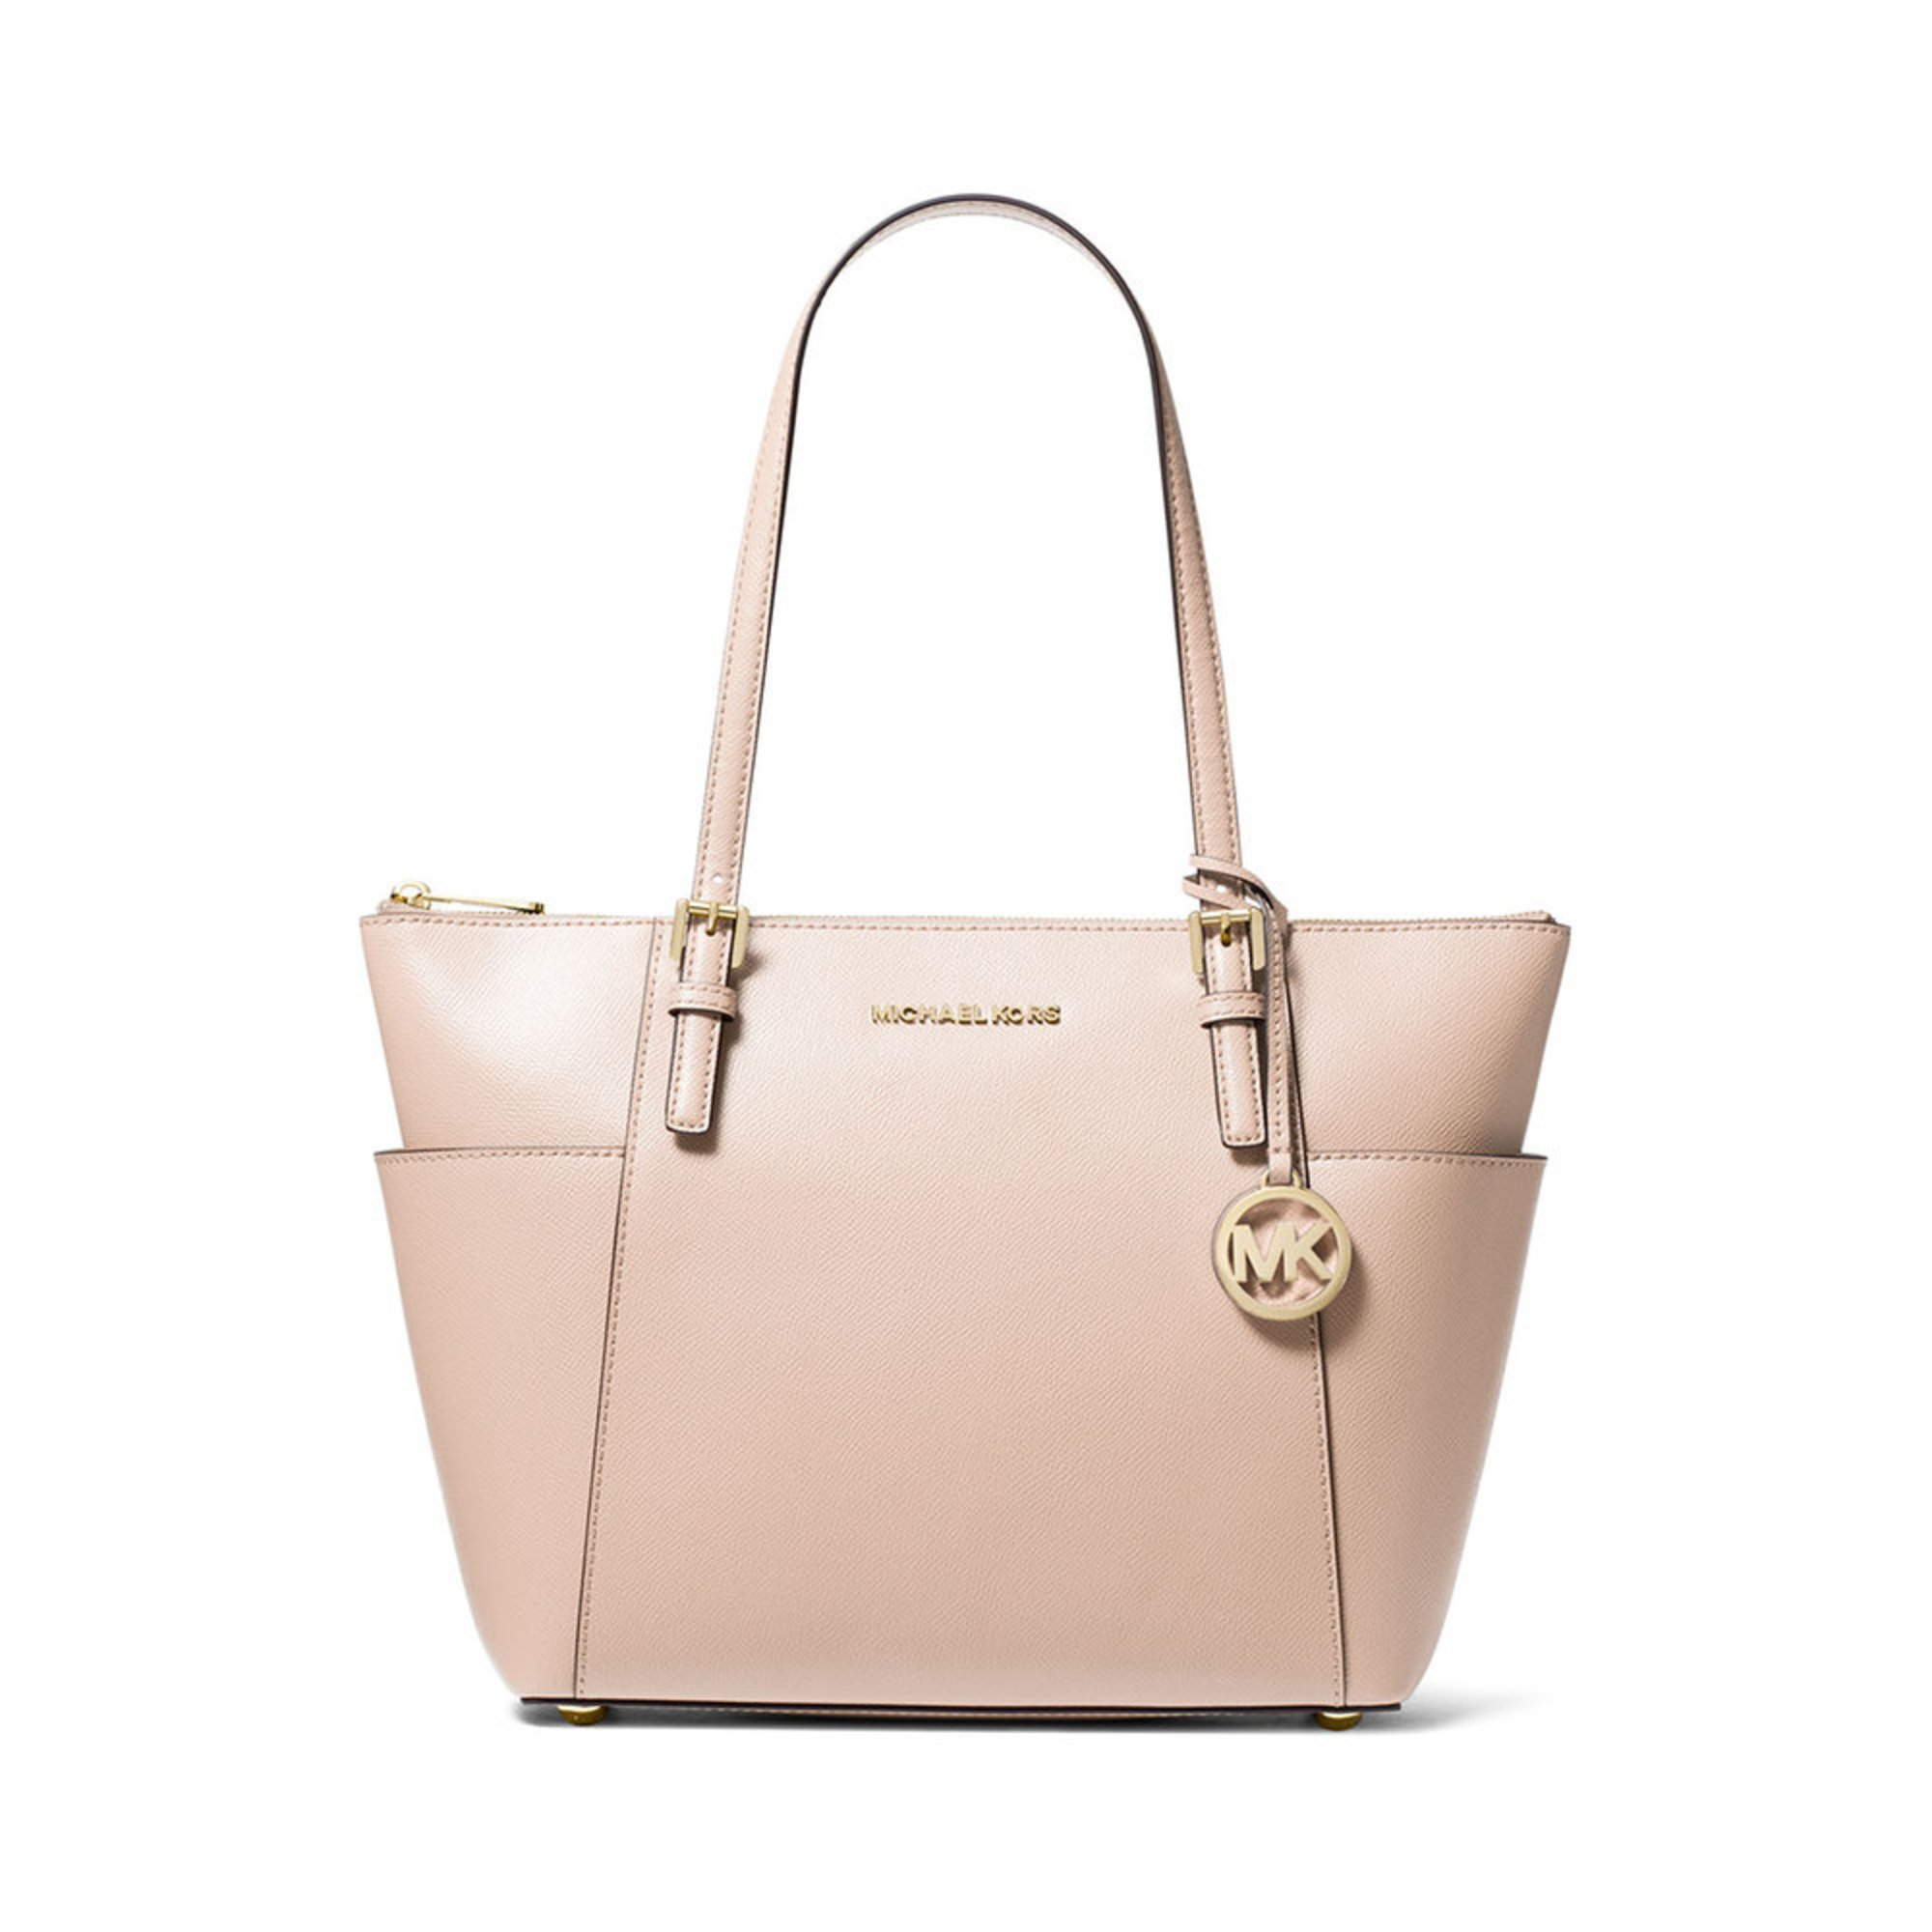 d53e93370afd Michael Kors. Michael Kors Jet Set Item East West Top Zip Tote